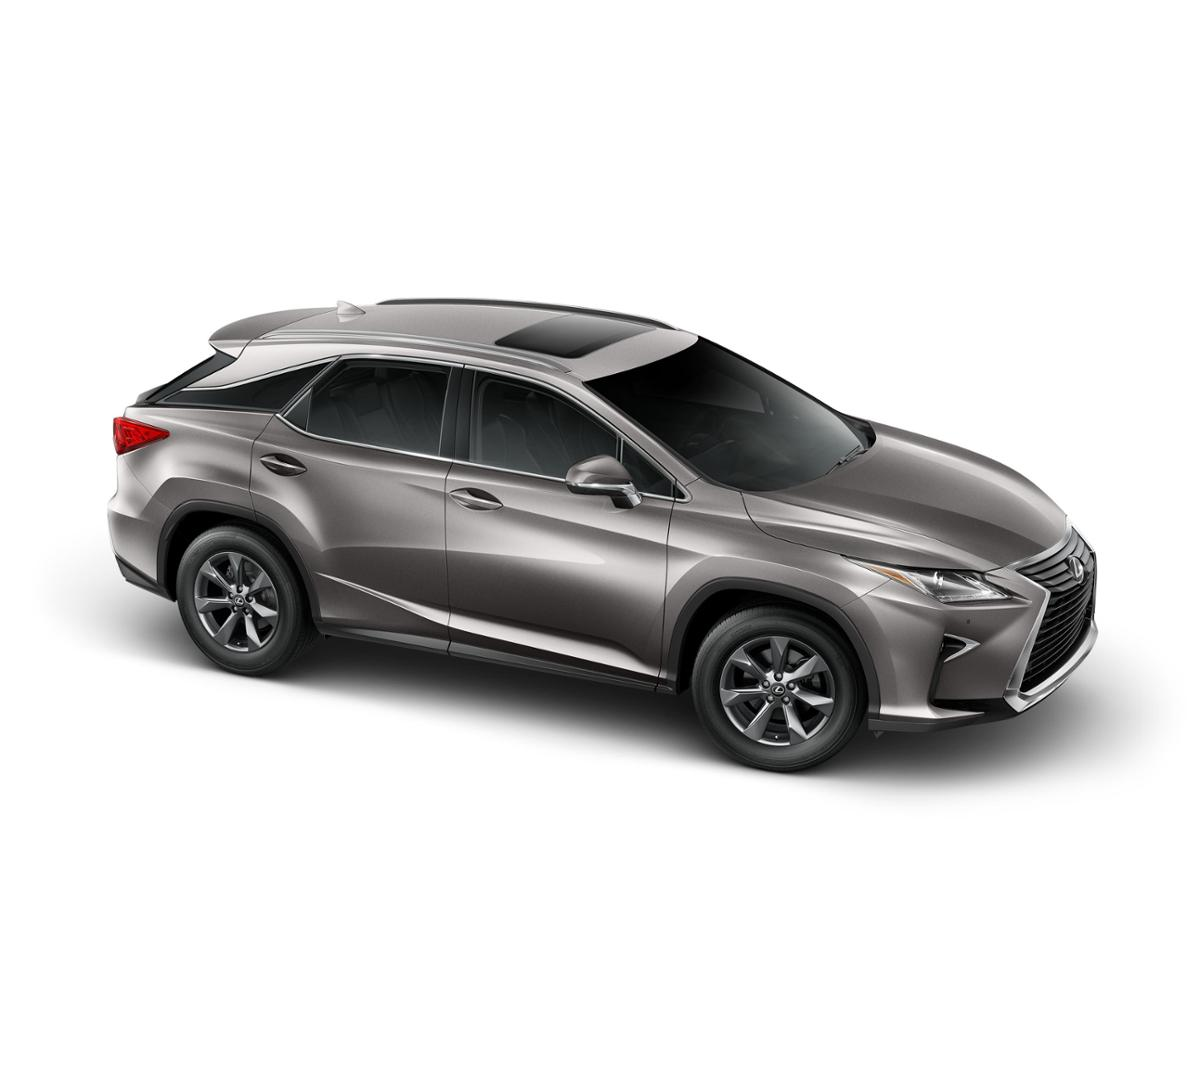 New 2019 Lexus RX 350 (Atomic Silver) For Sale In Houston